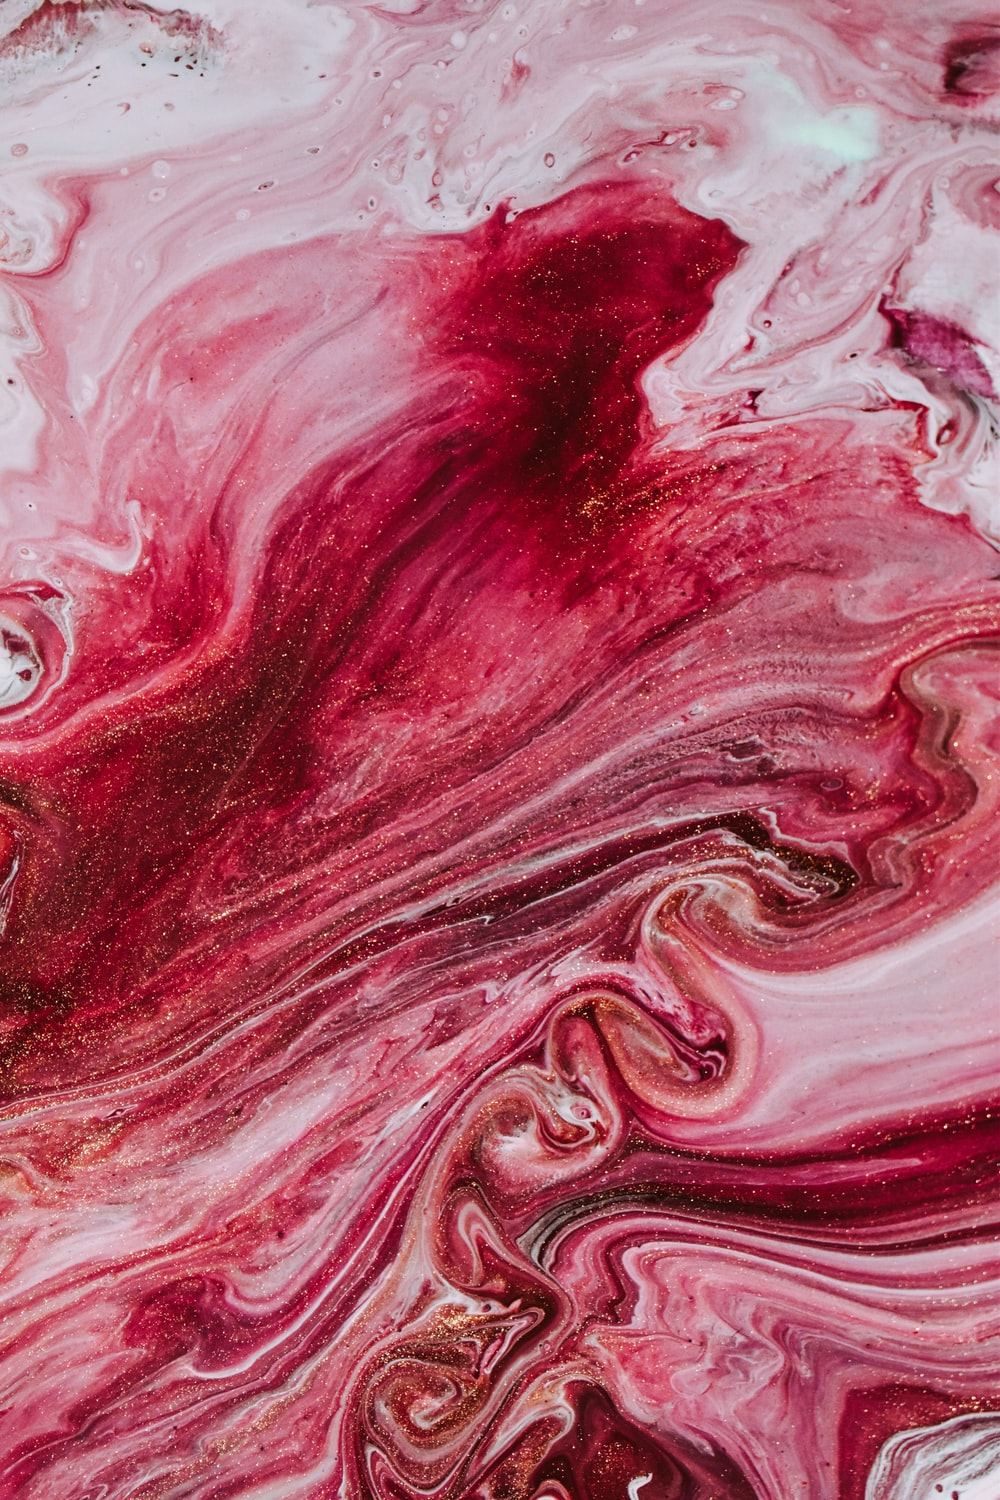 red and white abstract painting